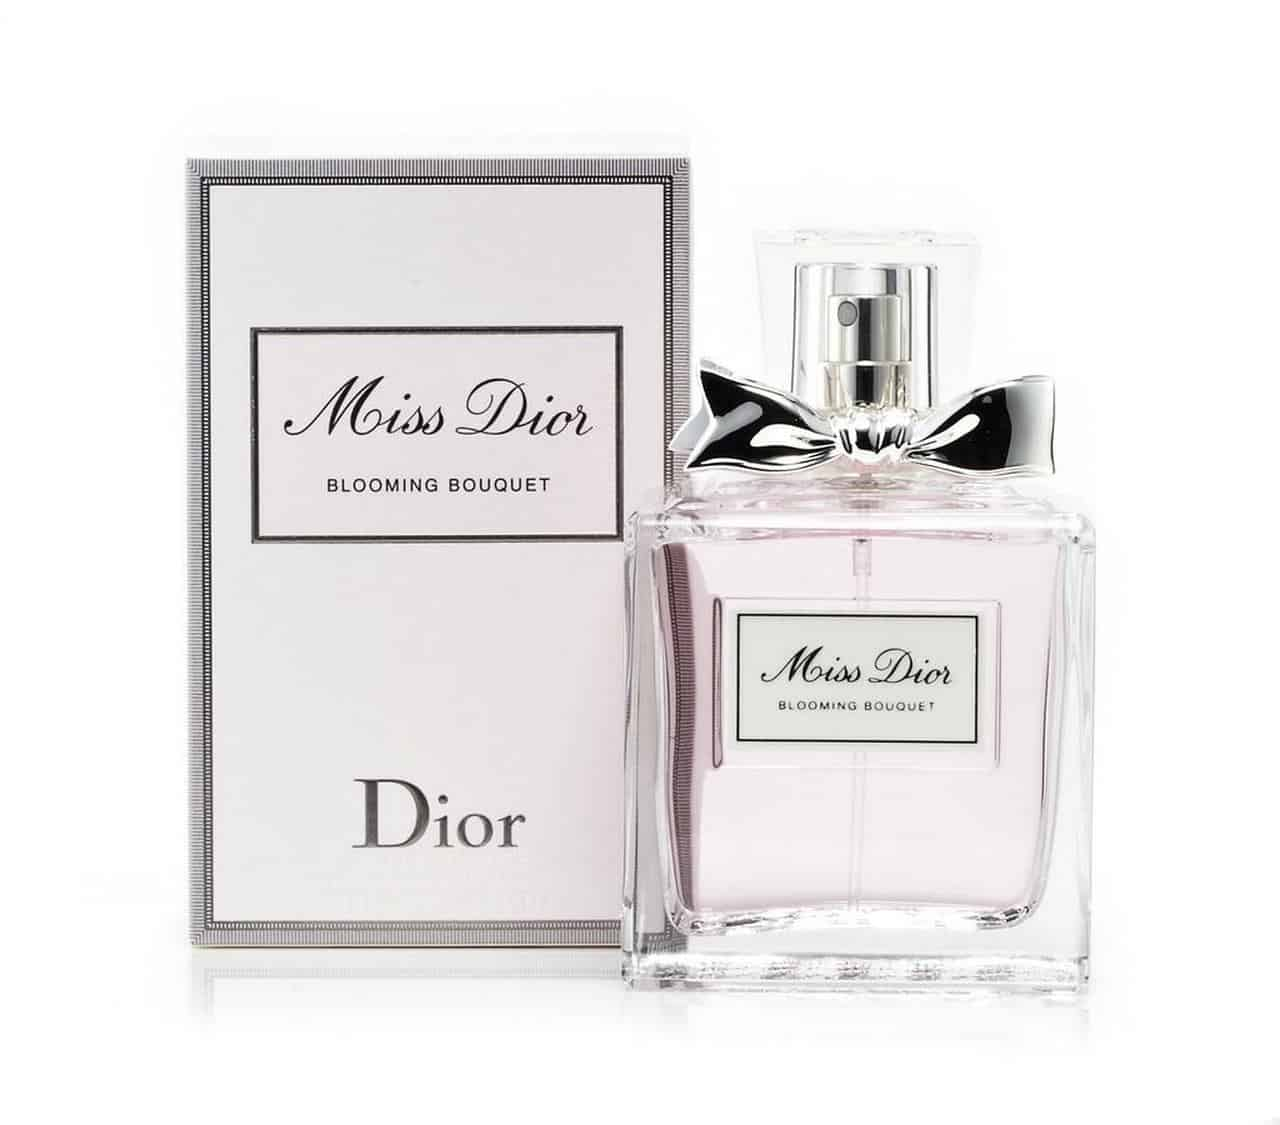 Miss Dior Blooming Bouquet Eau de Toilette by Dior